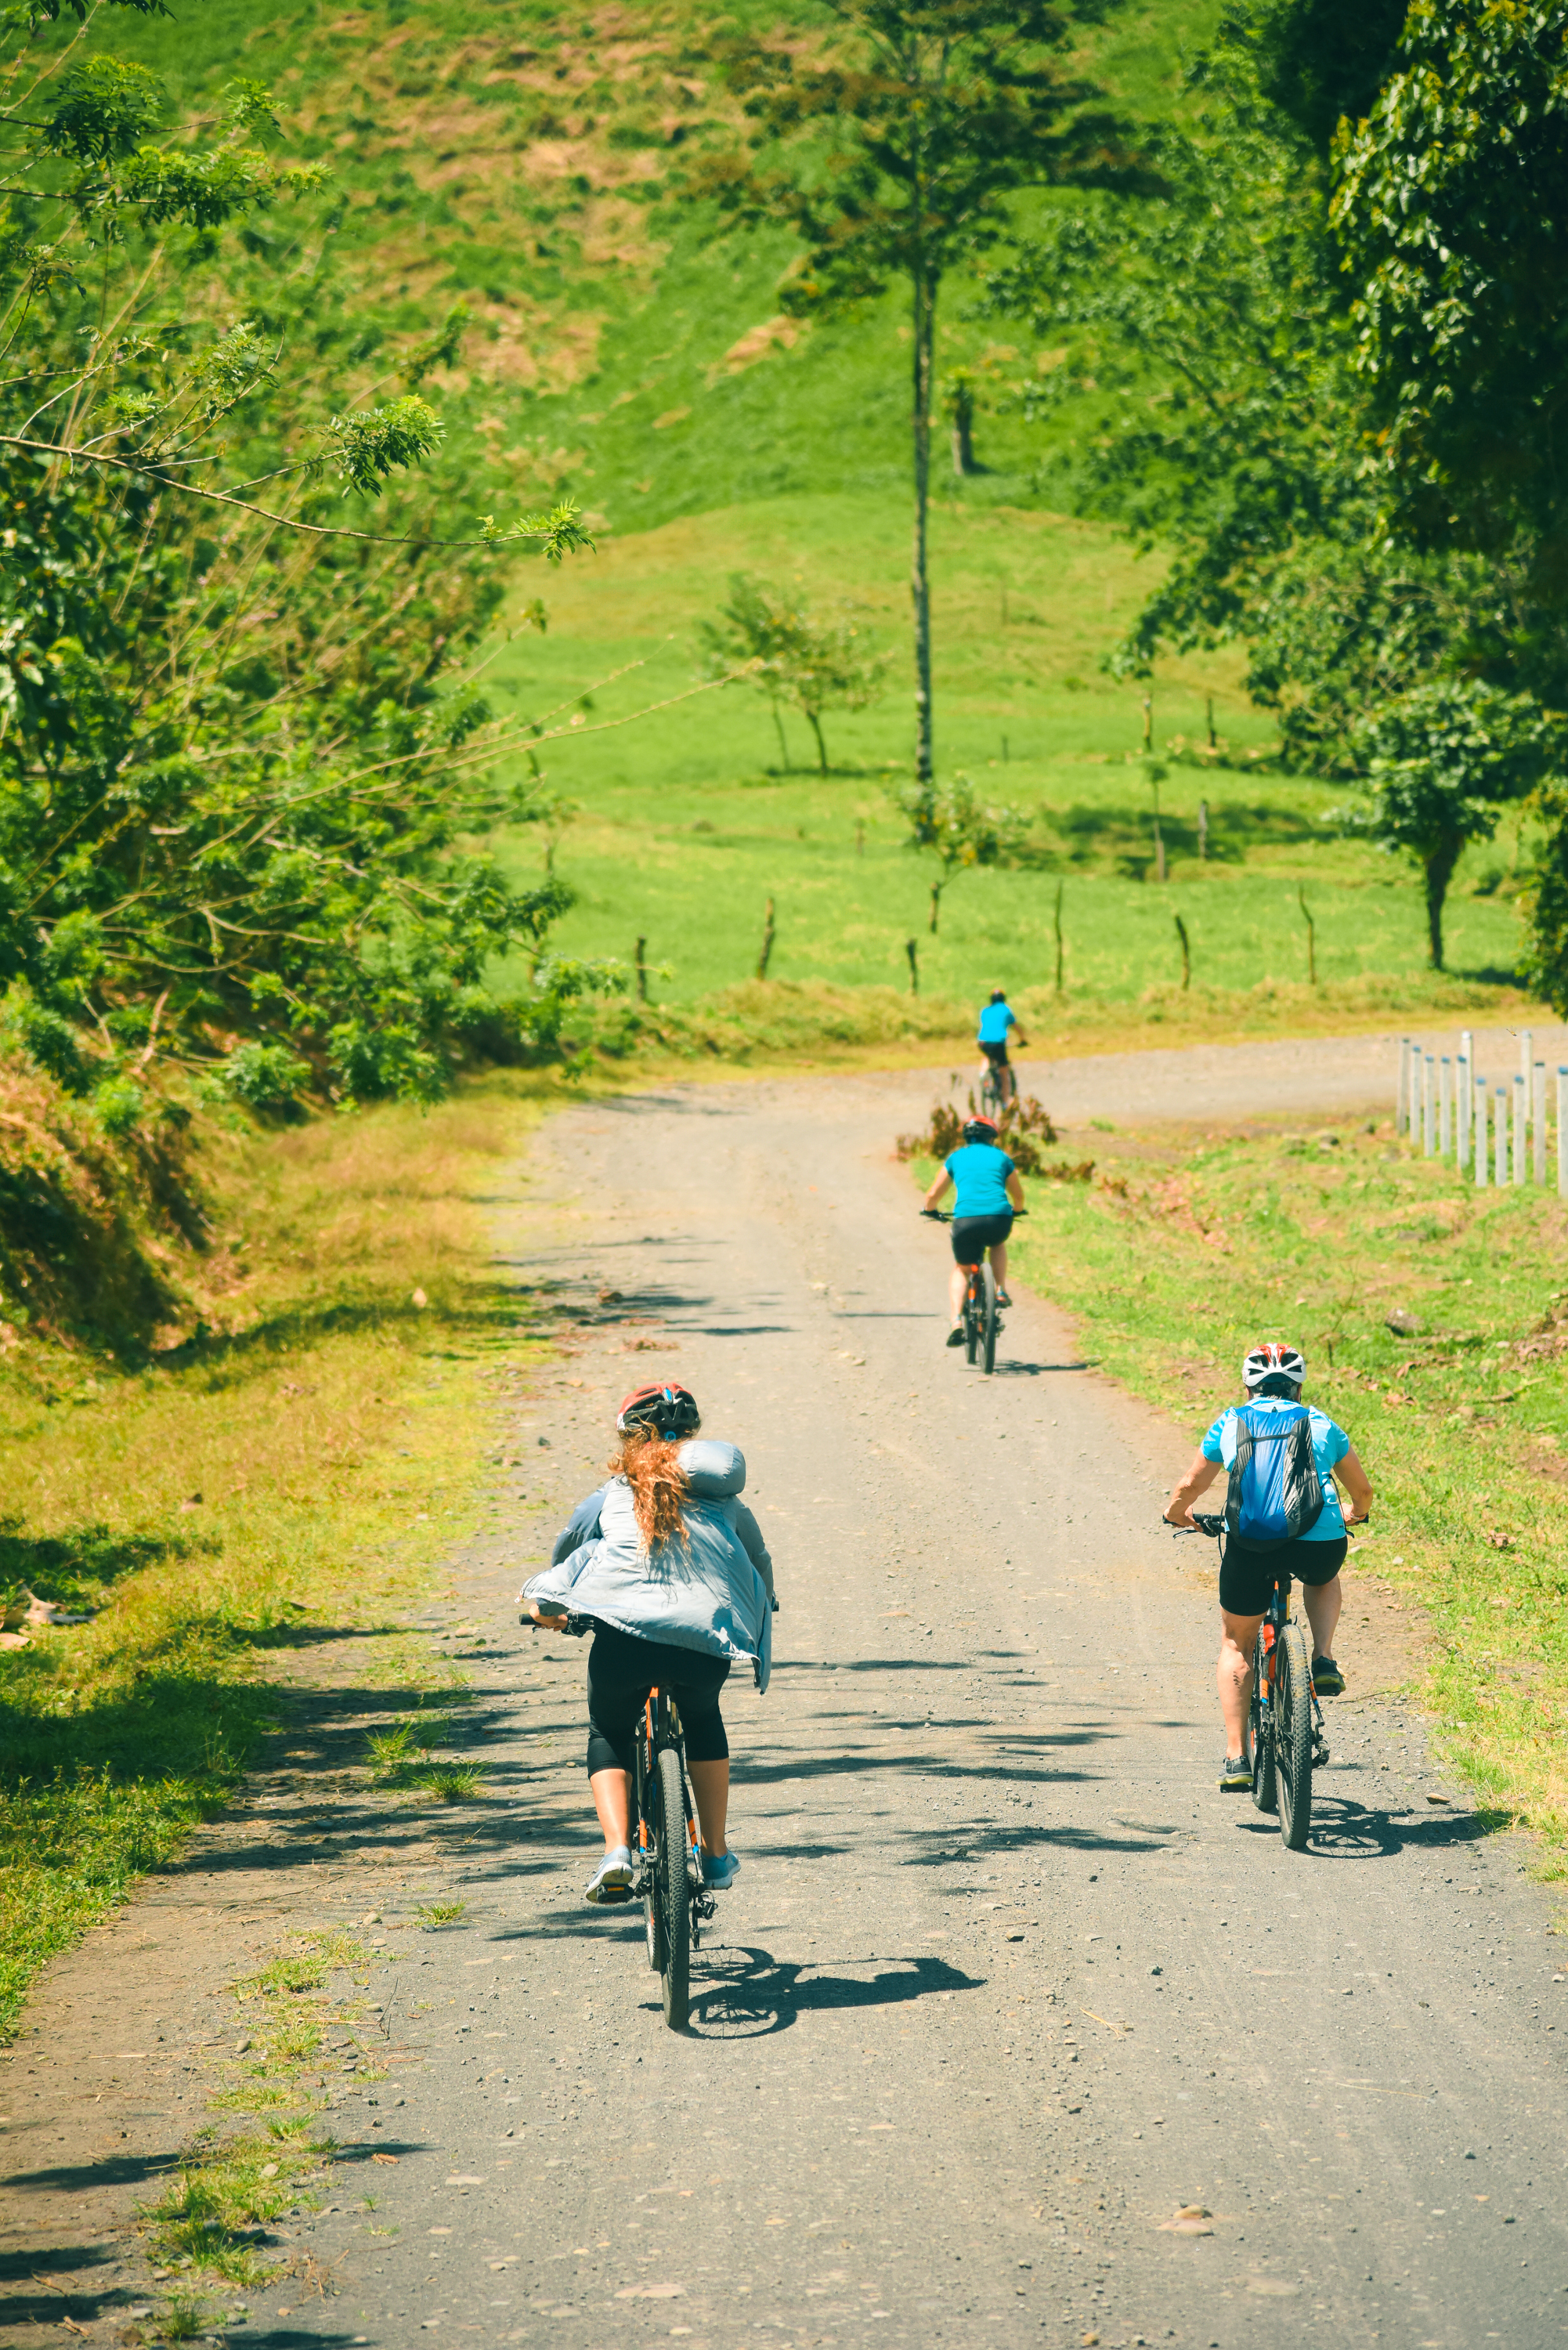 The best route for mountain biking in Costa Rica